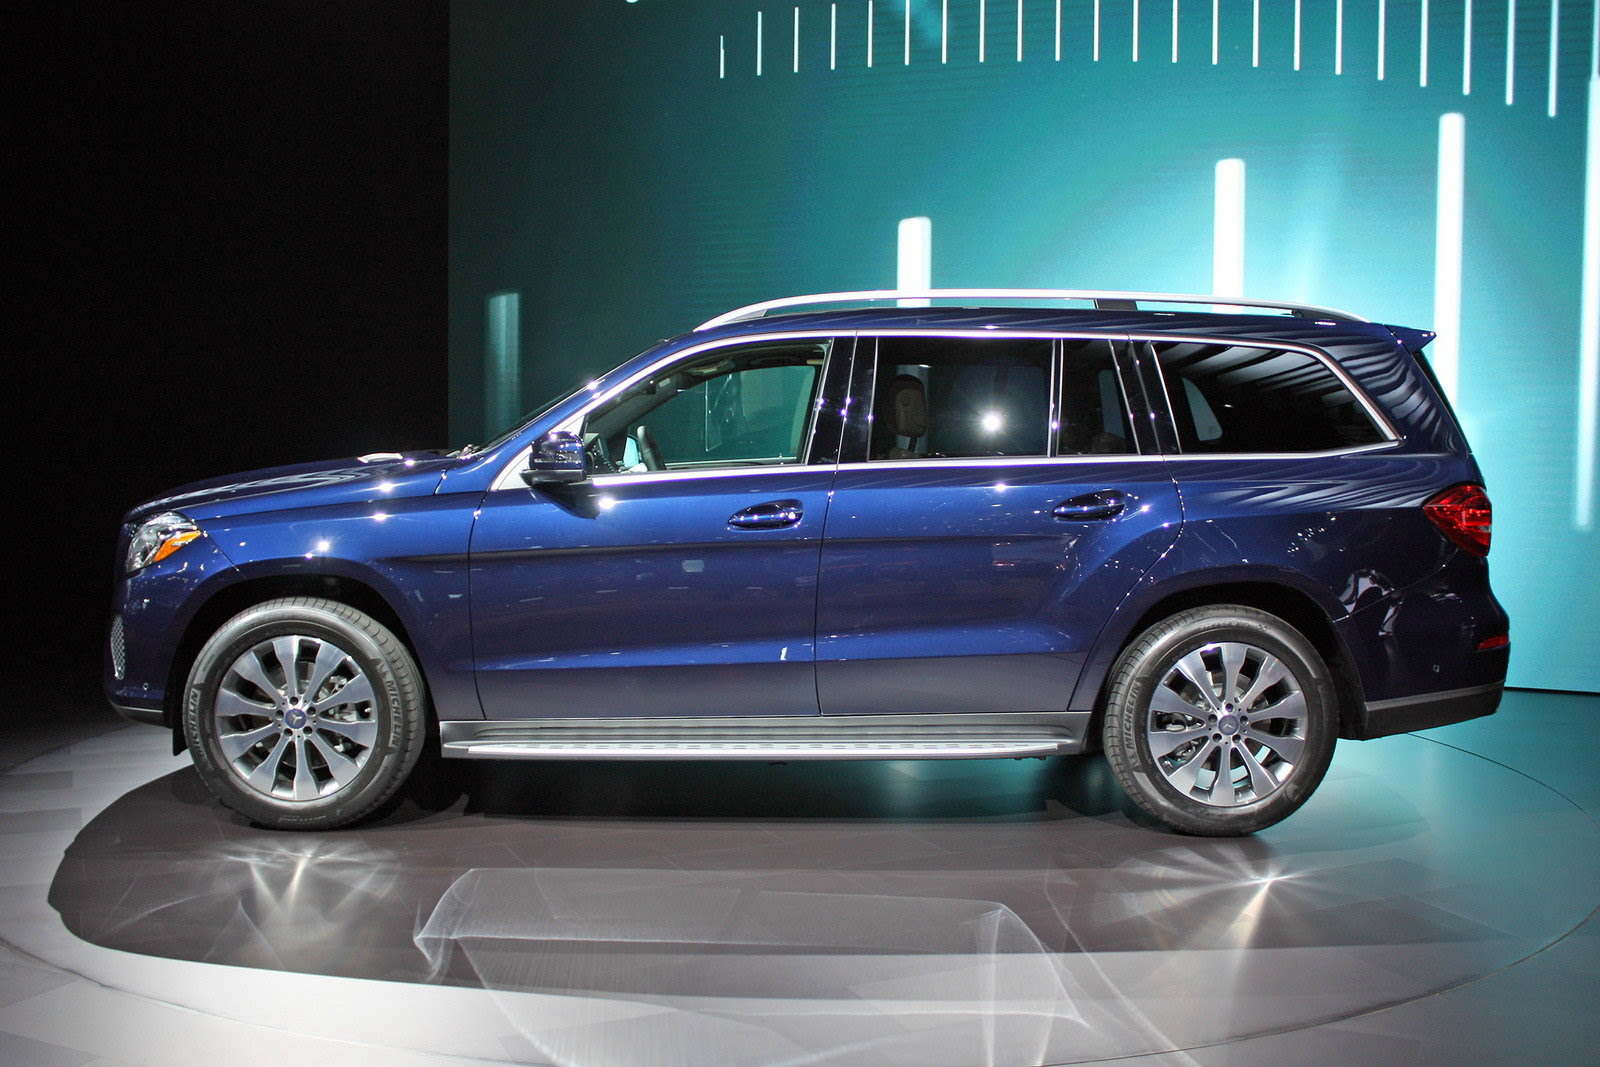 2017 Mercedes-Benz GLS-Class - Picture 656632 | car review ...